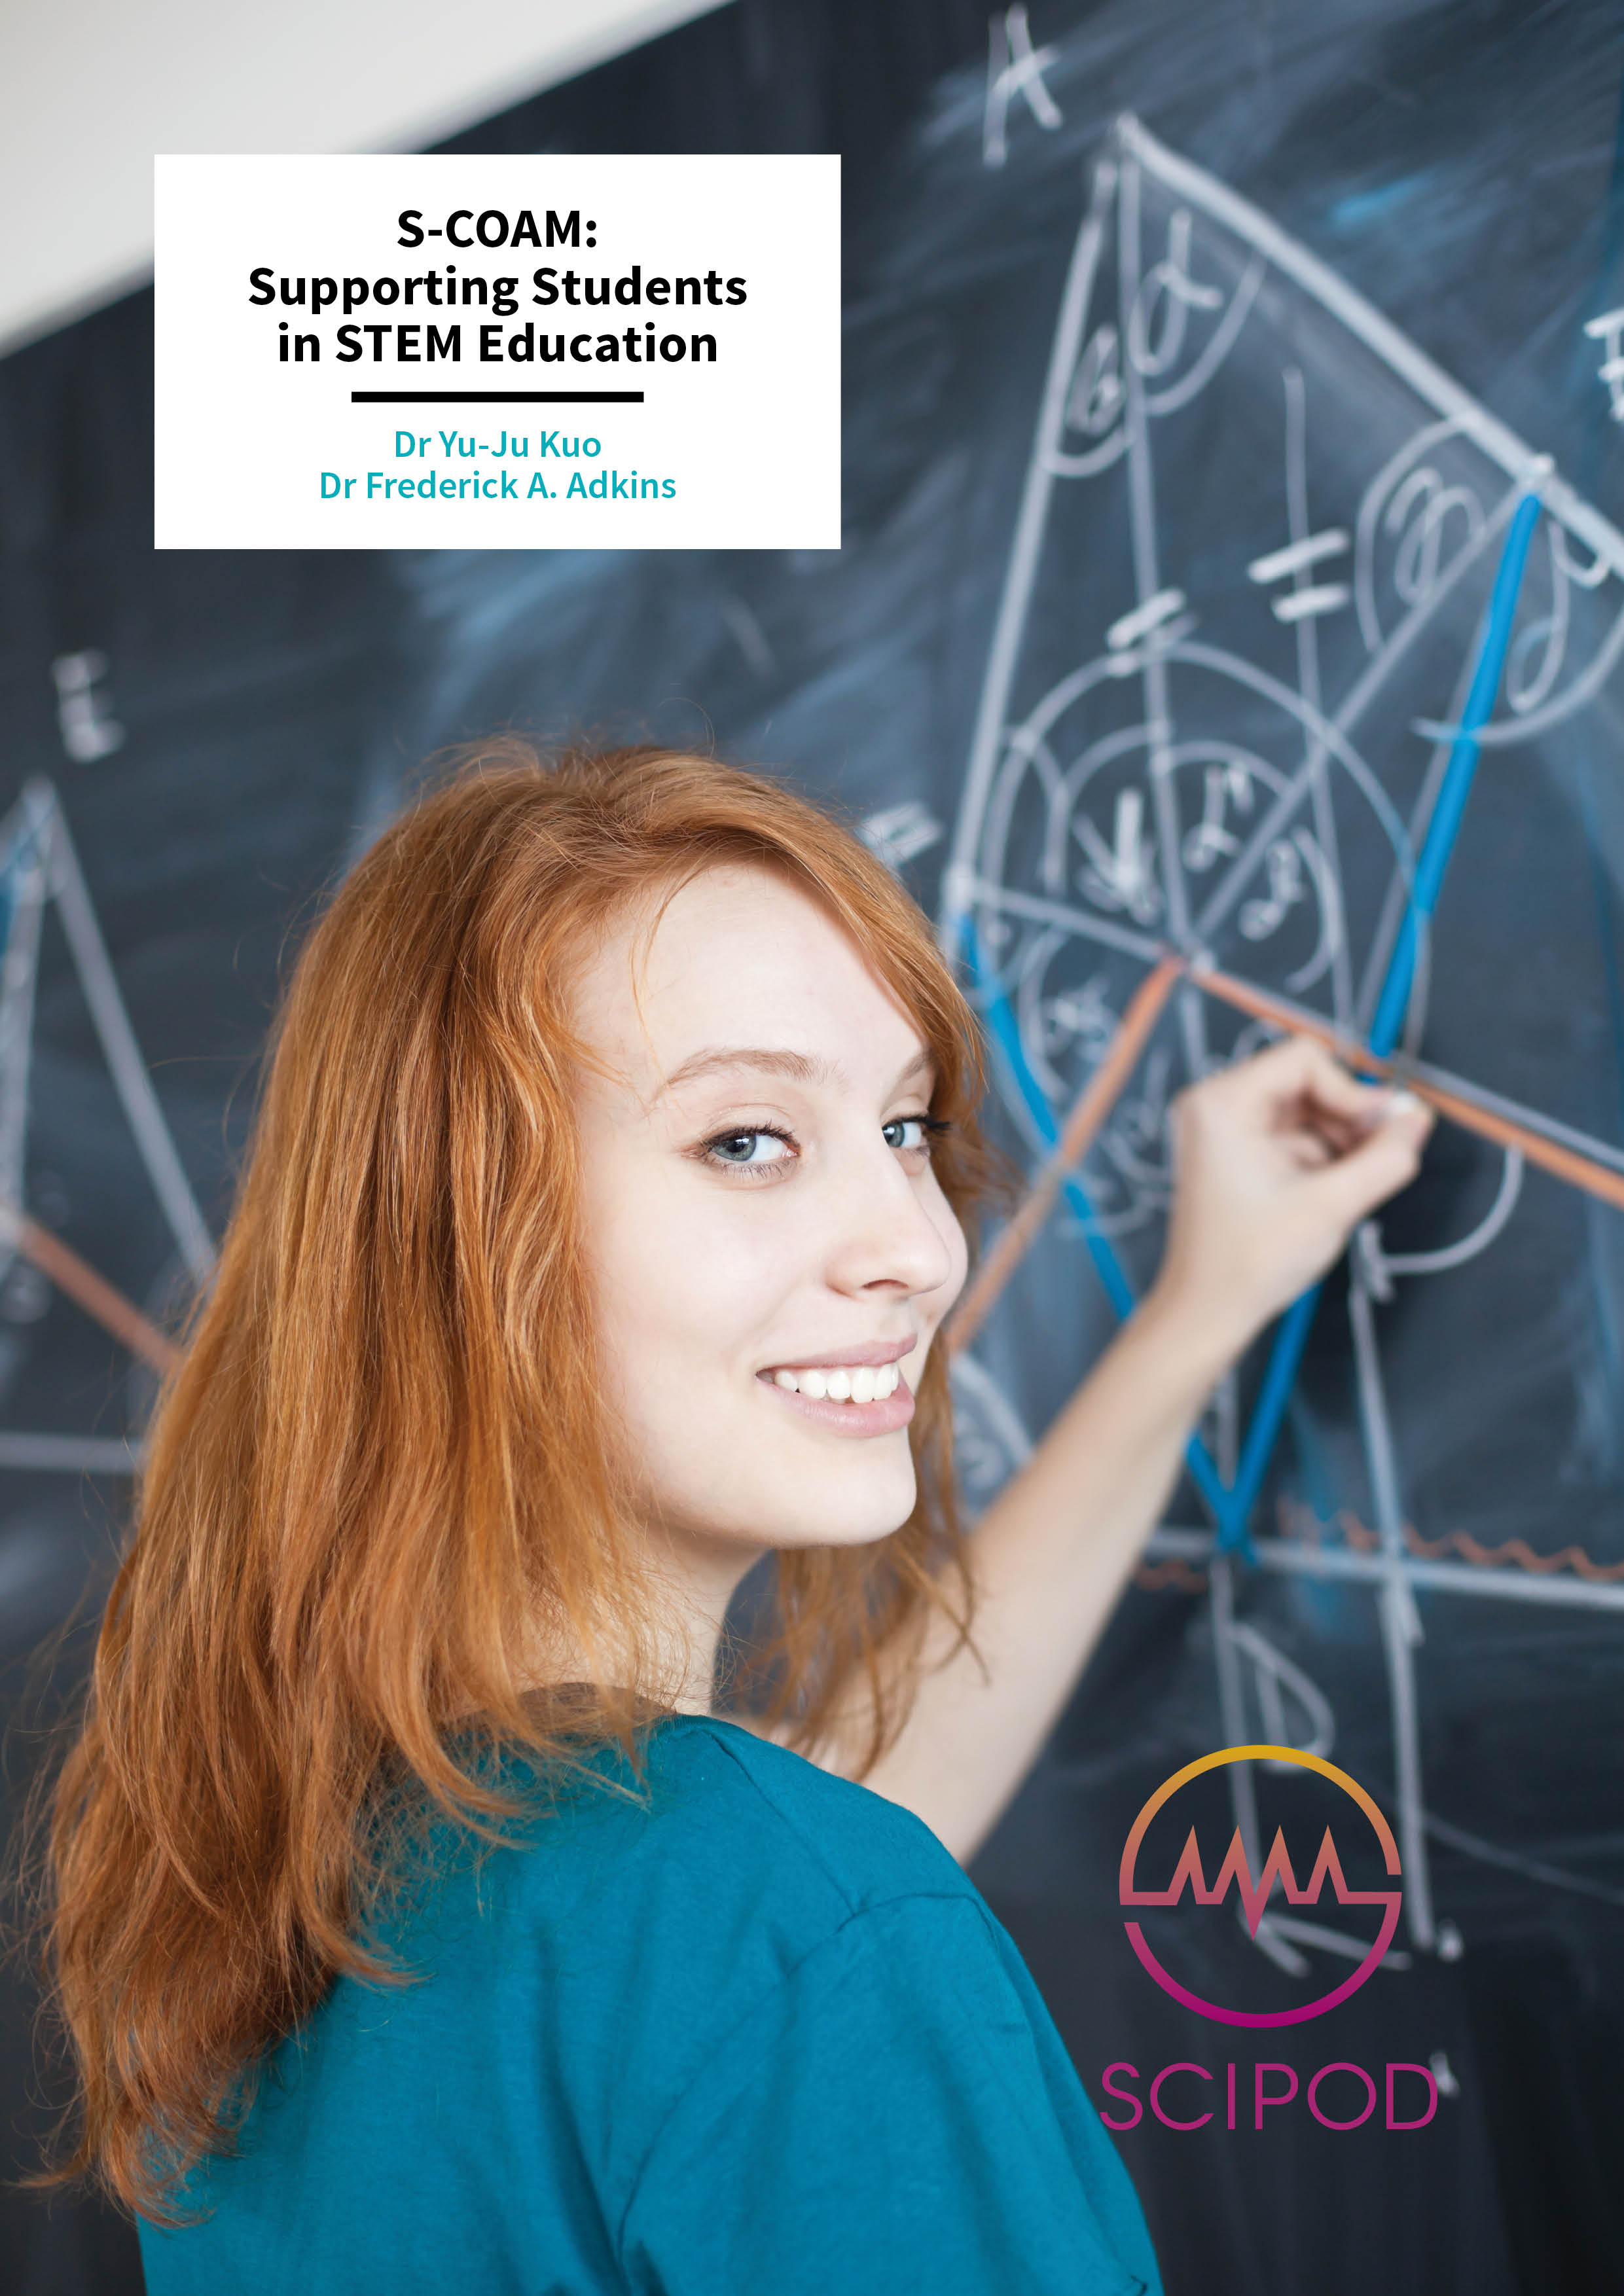 S-COAM: Supporting Students in STEM Education – Indiana University of Pennsylvania